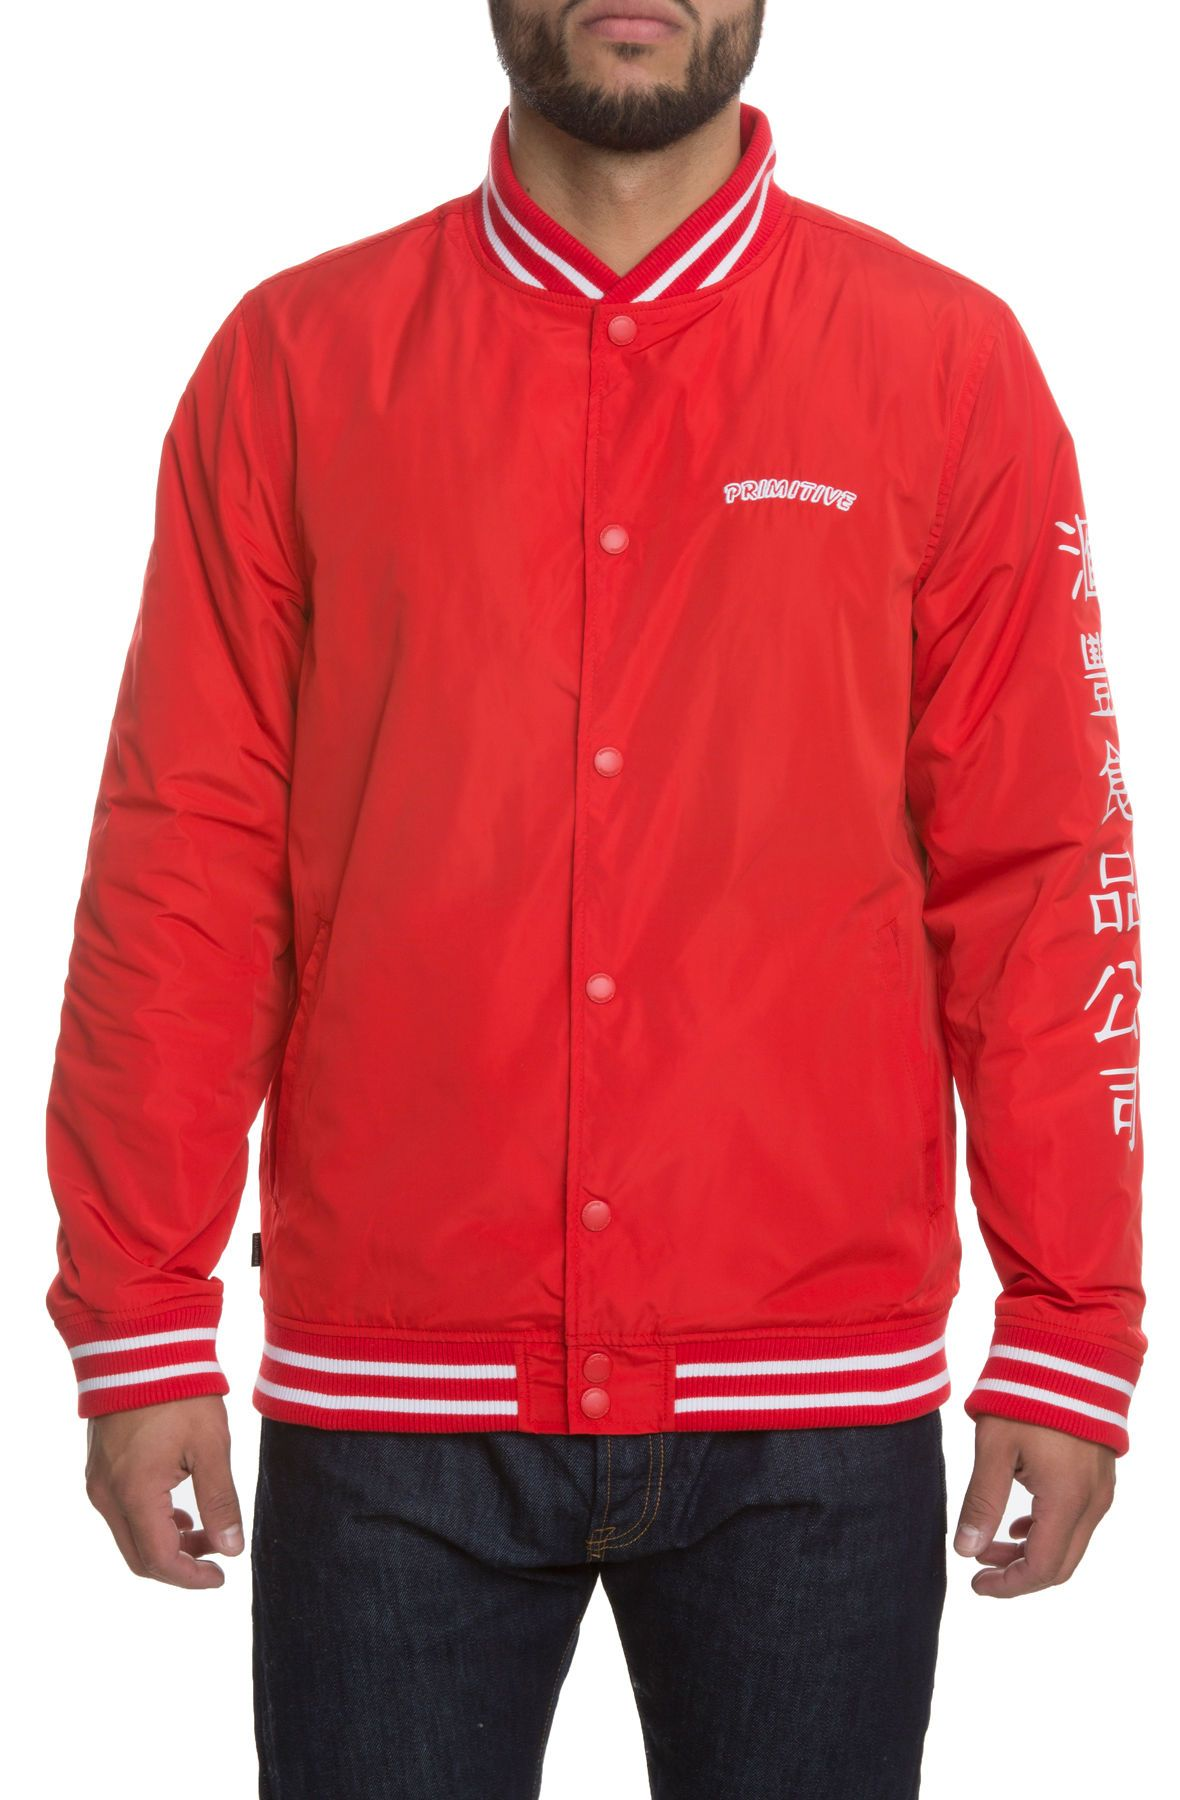 1a87df10a Primitive The Primitive X Sriracha Huy Fong Sherpa Varsity Jacket In Red Red